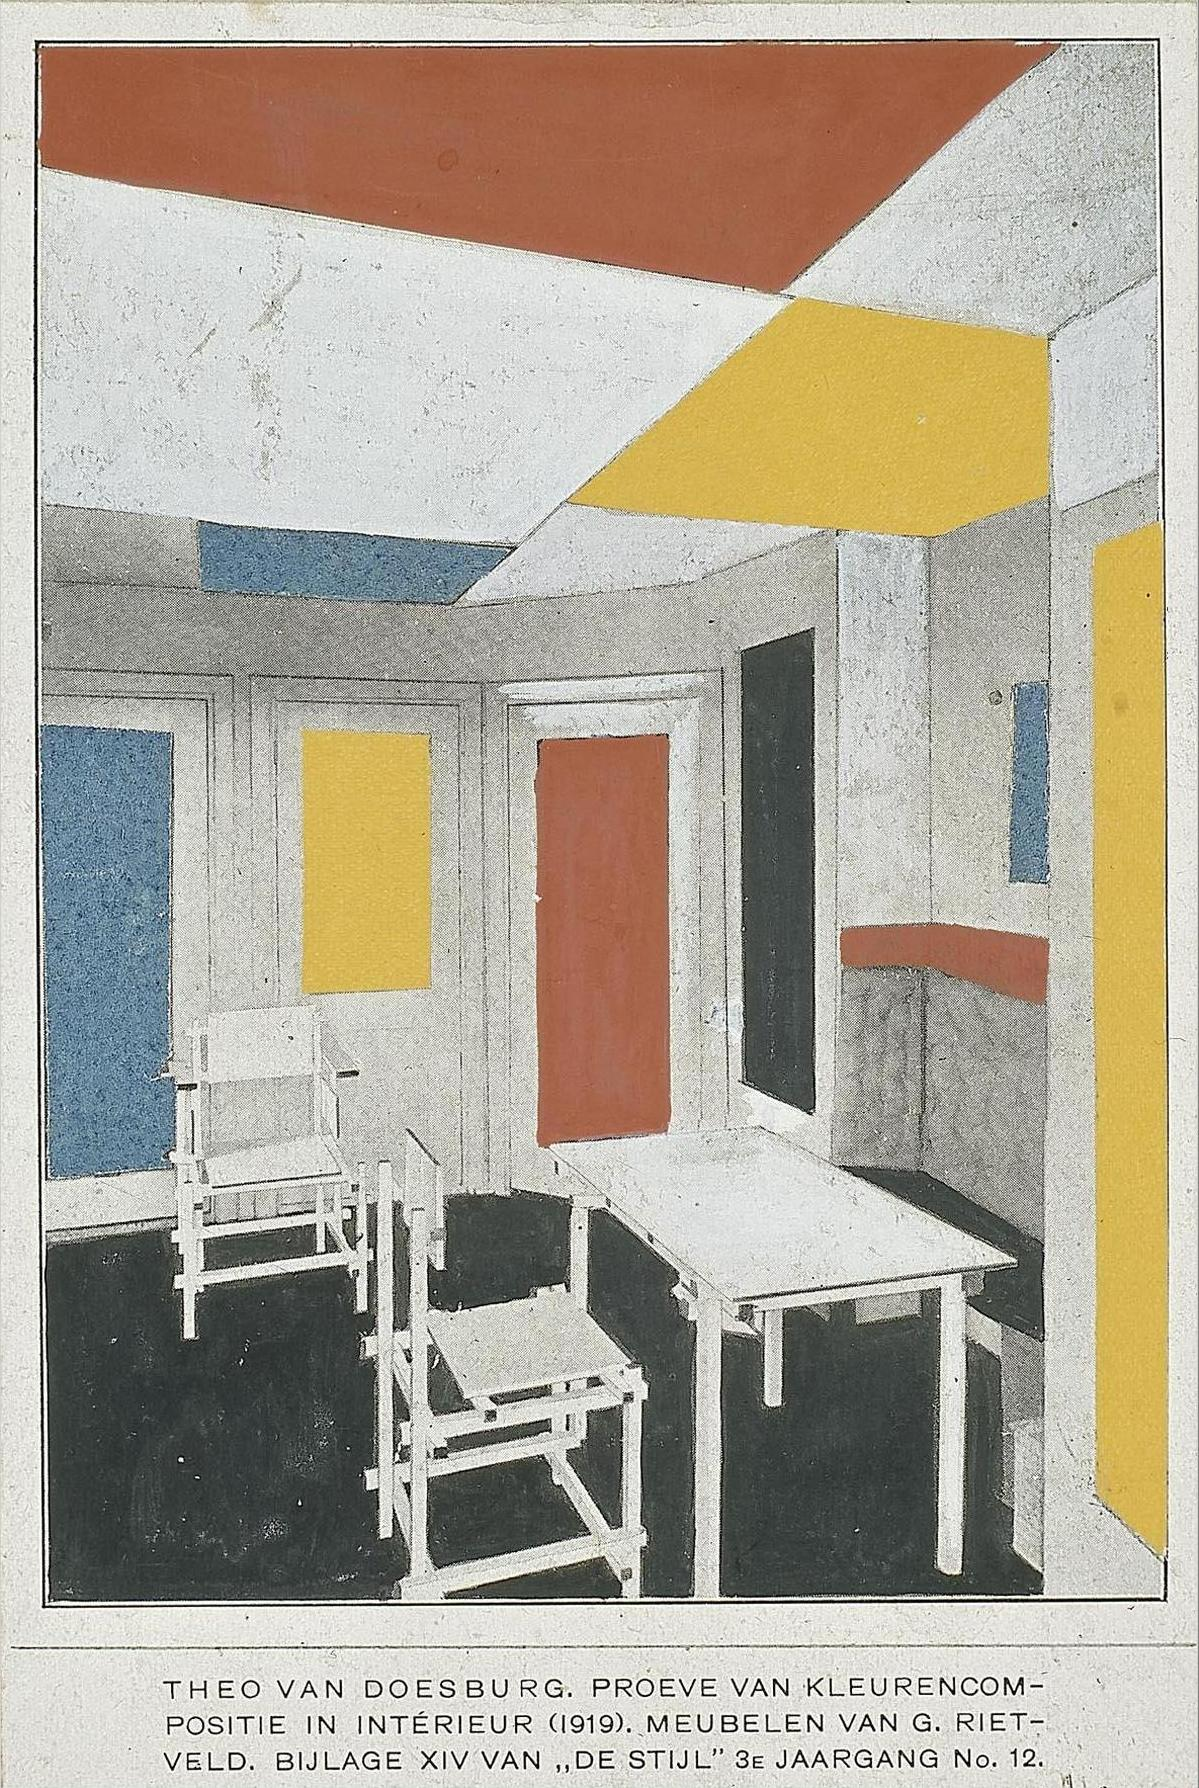 File:Van Doesburg and Rietveld interior 1919.jpg - Wikimedia Commons